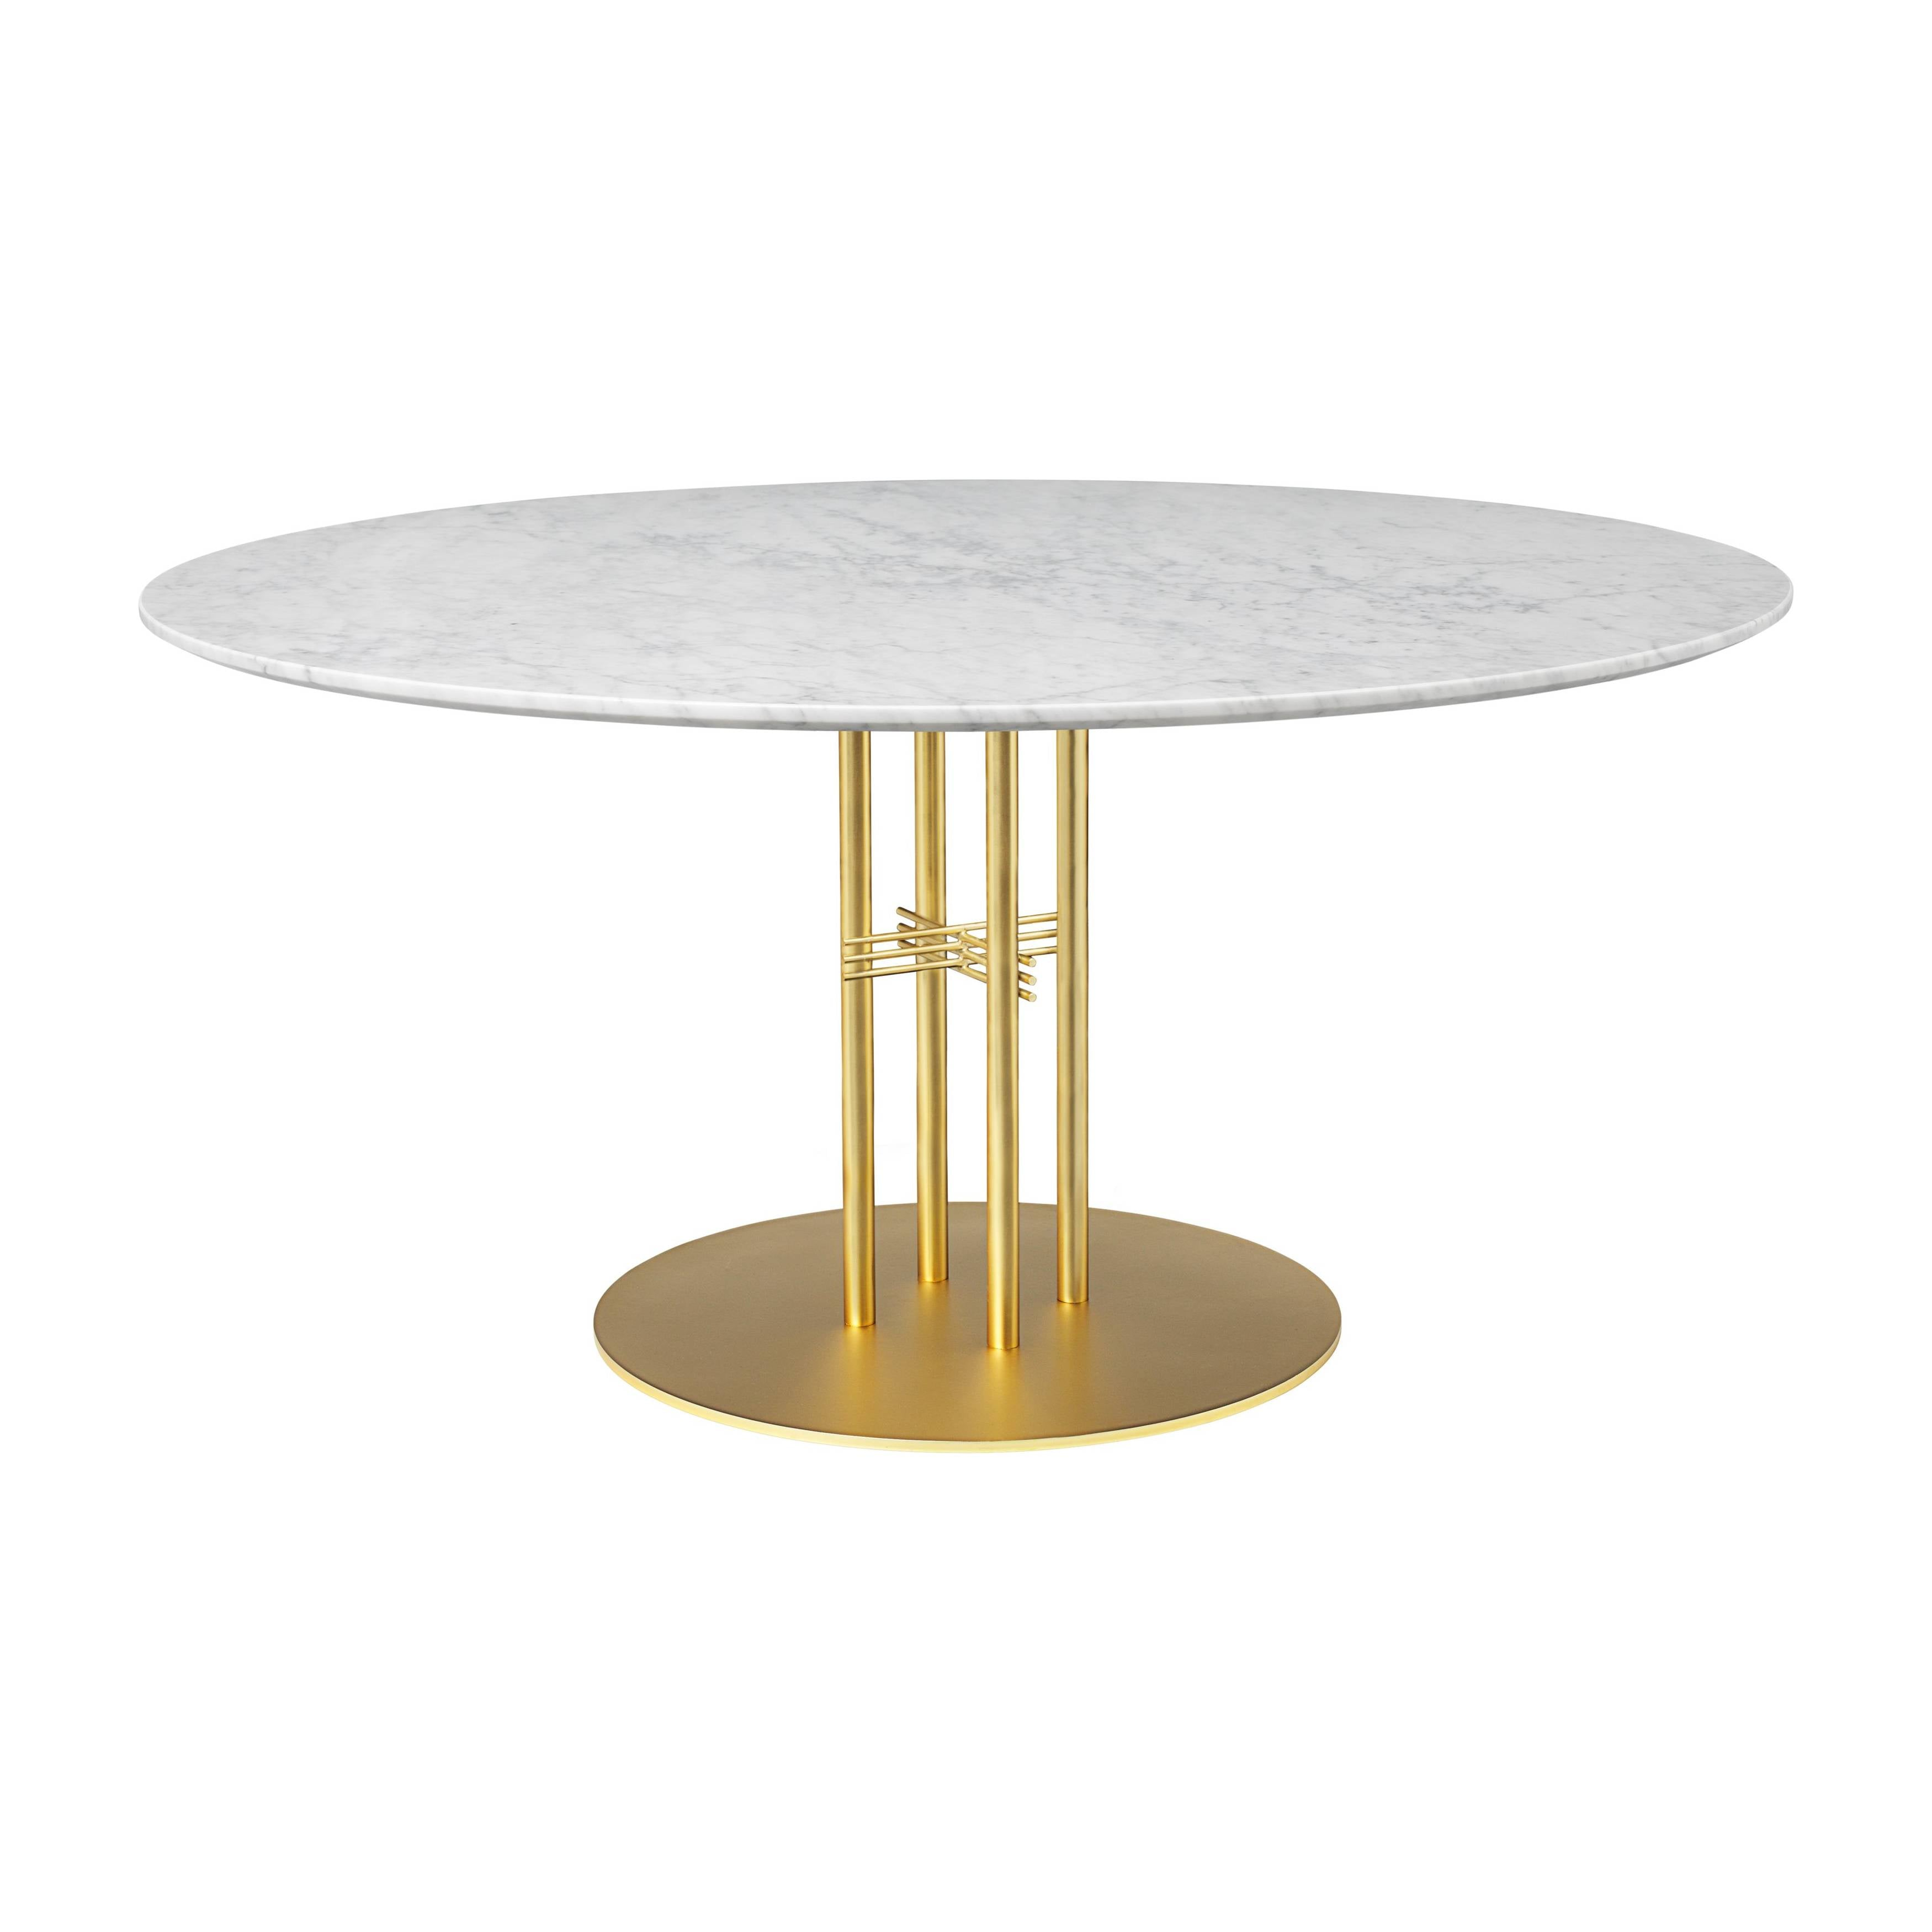 TS Column Dining Table: Extra Large + Brass Base +White Carrara Marble